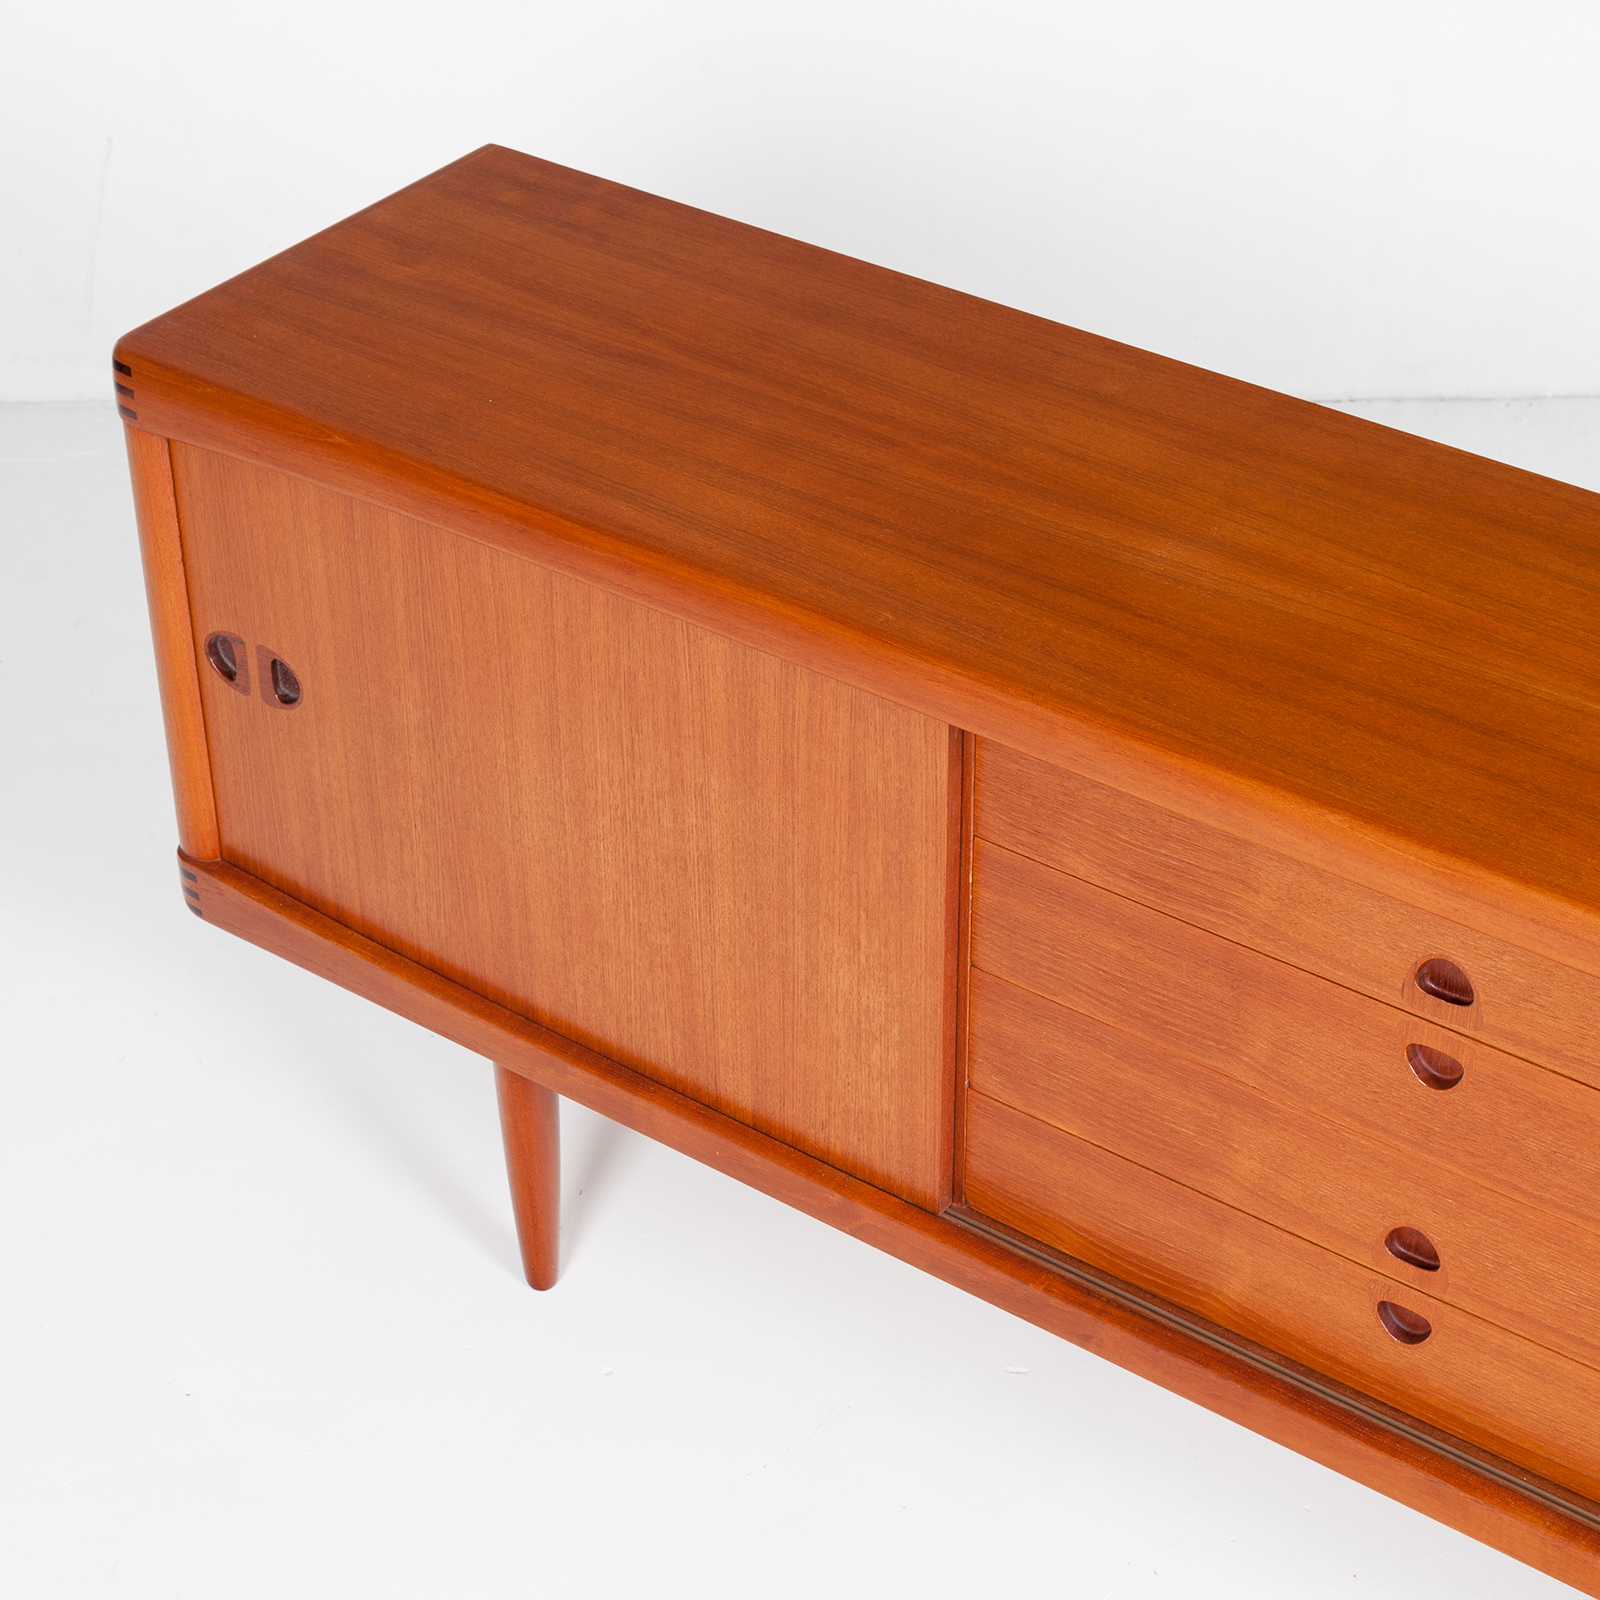 Sideboard By H W Klein In Teak For Bramin, 1960s, Denmark90